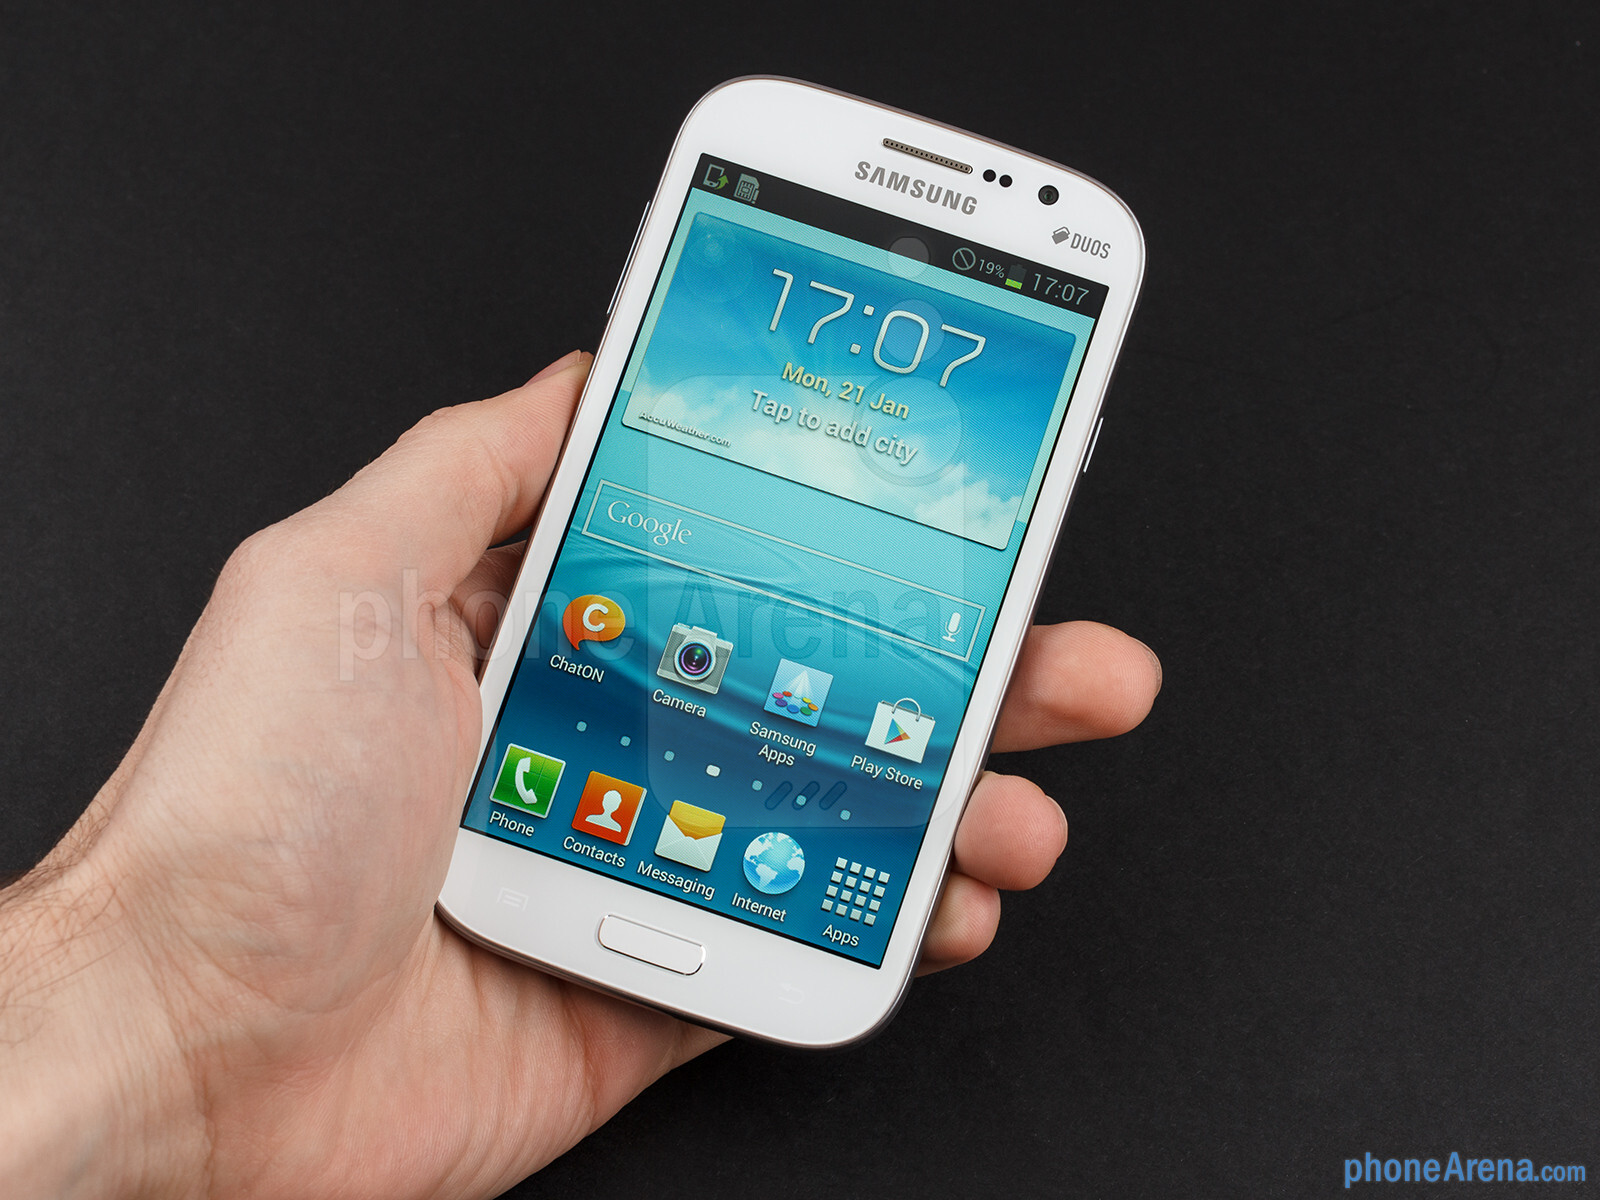 http://i-cdn.phonearena.com/images/reviews/126362-image/Samsung-Galaxy-Grand-Duos-Preview-003.jpg